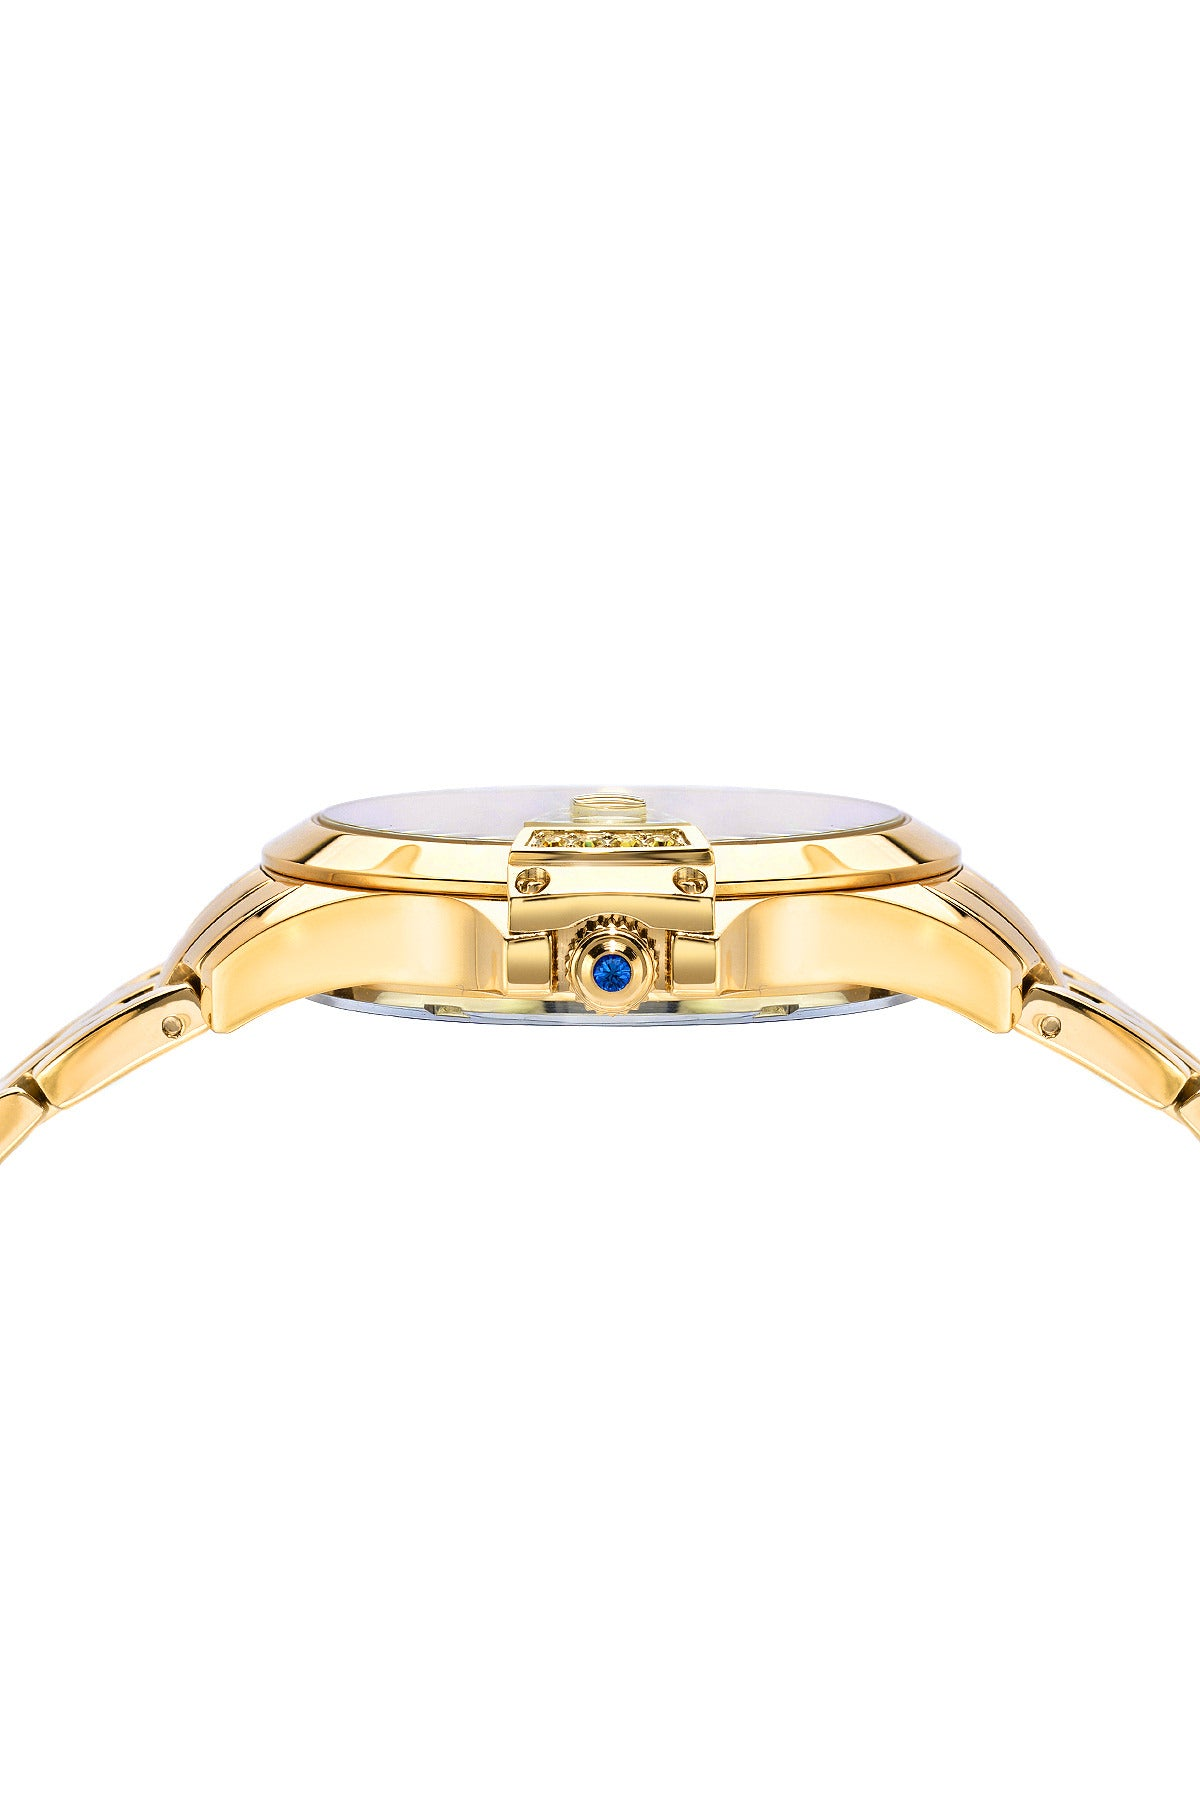 Porsamo Bleu Olivia luxury women's stainless steel watch, gold 981BOLS